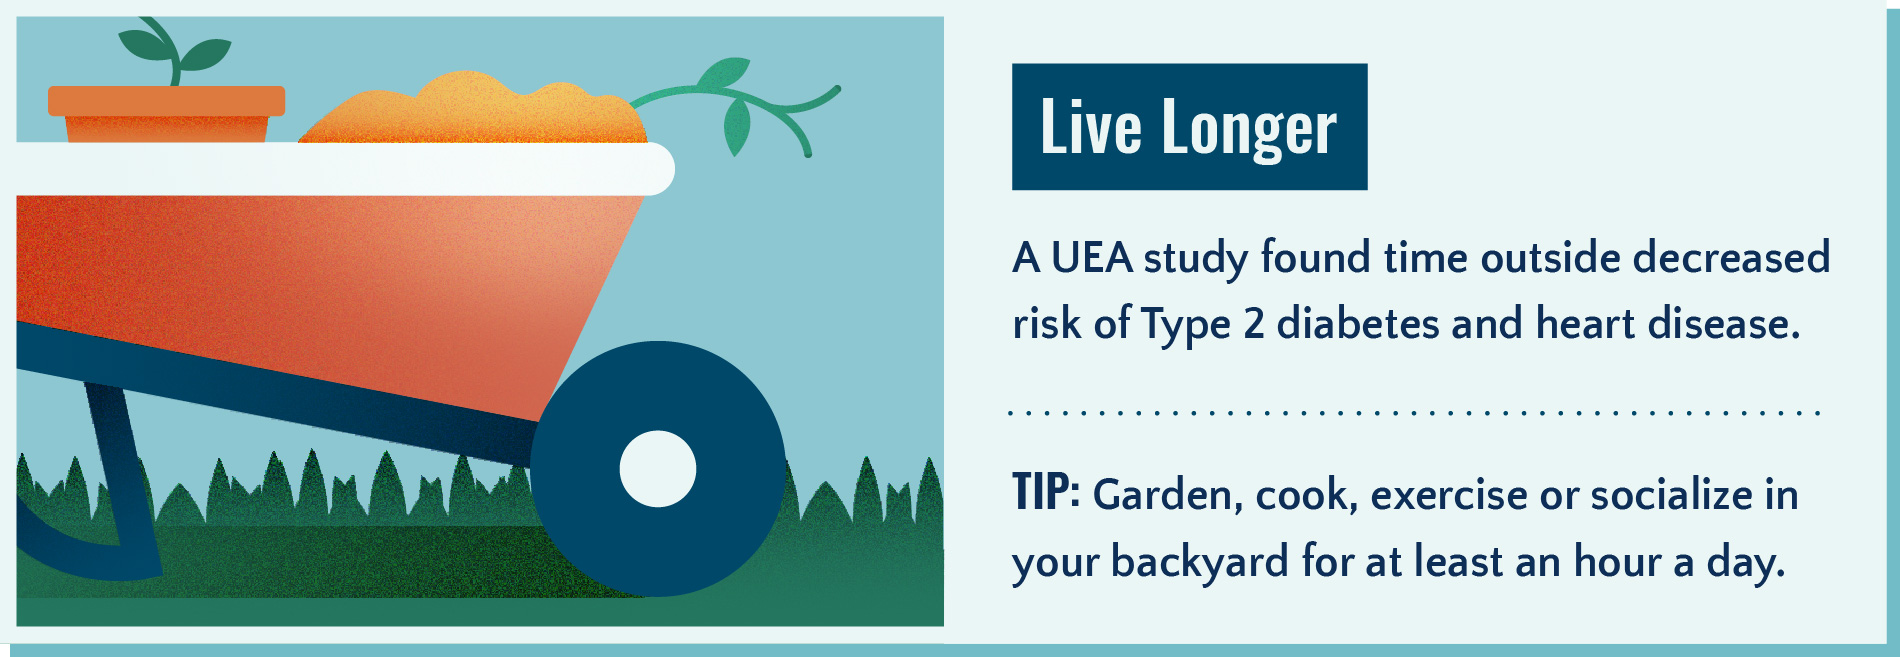 Spending time outside can help you live longer.